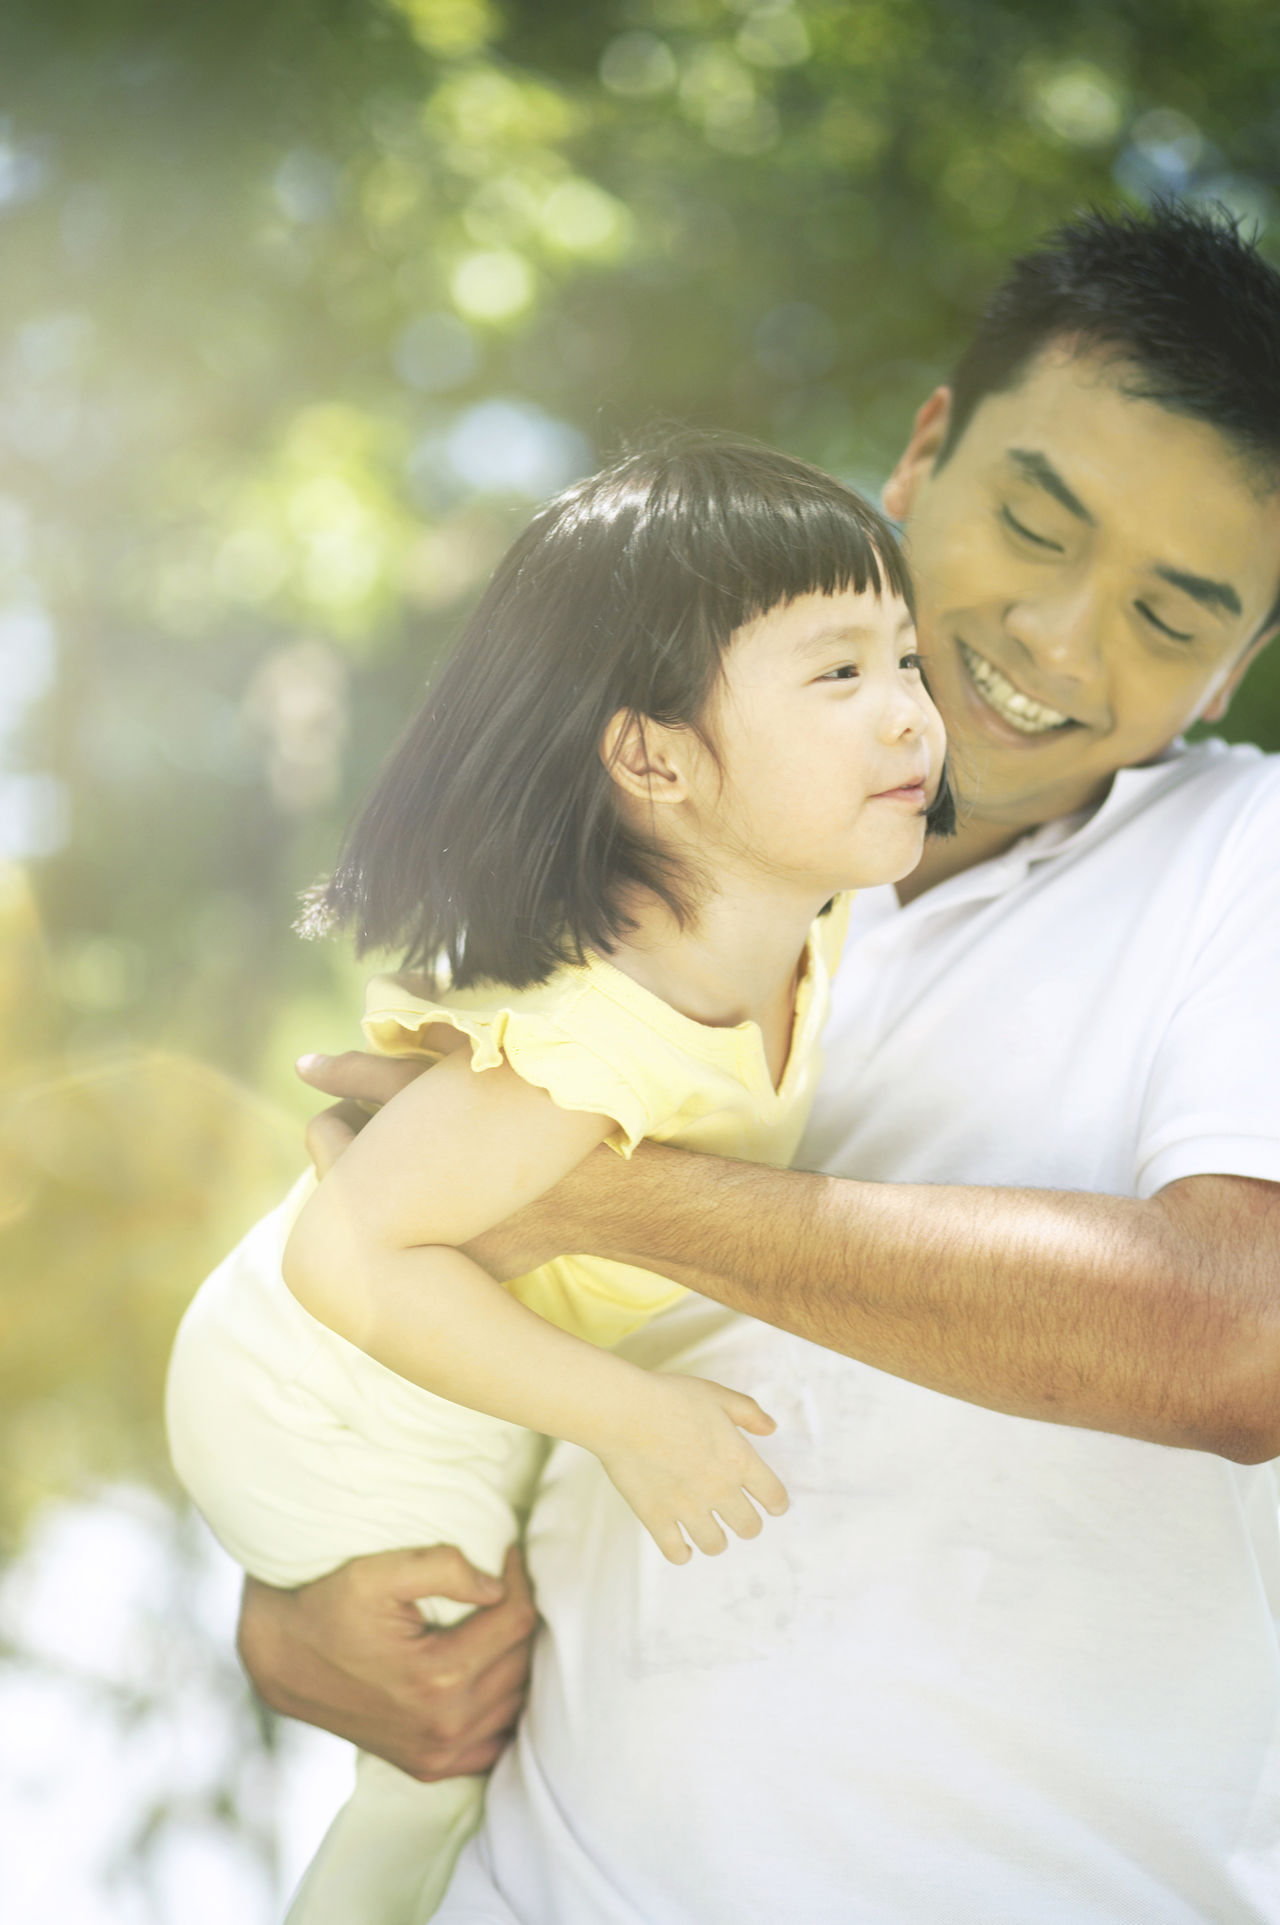 Bonding Carry Casual Clothing Childhood Daughter Day Embracing Family With One Child Father Father And Daughter Free Time Happiness Leisure Activity Lifestyles Love Outdoor Outdoors Real People Smiling Swing Togetherness Tree Weekend Activities Young Adult